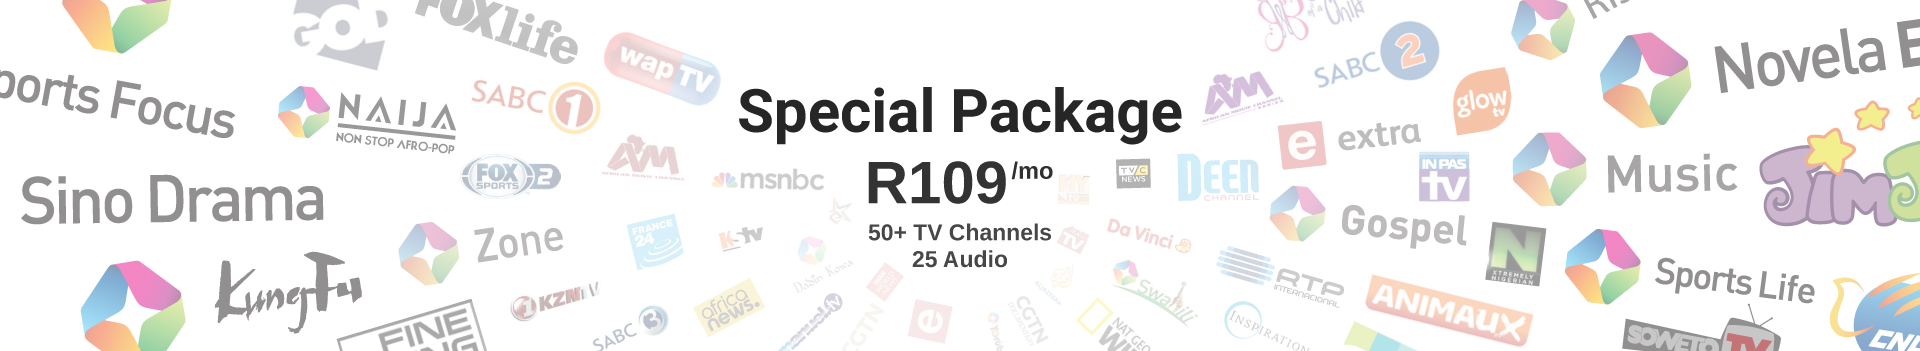 Special Package: R109/mo